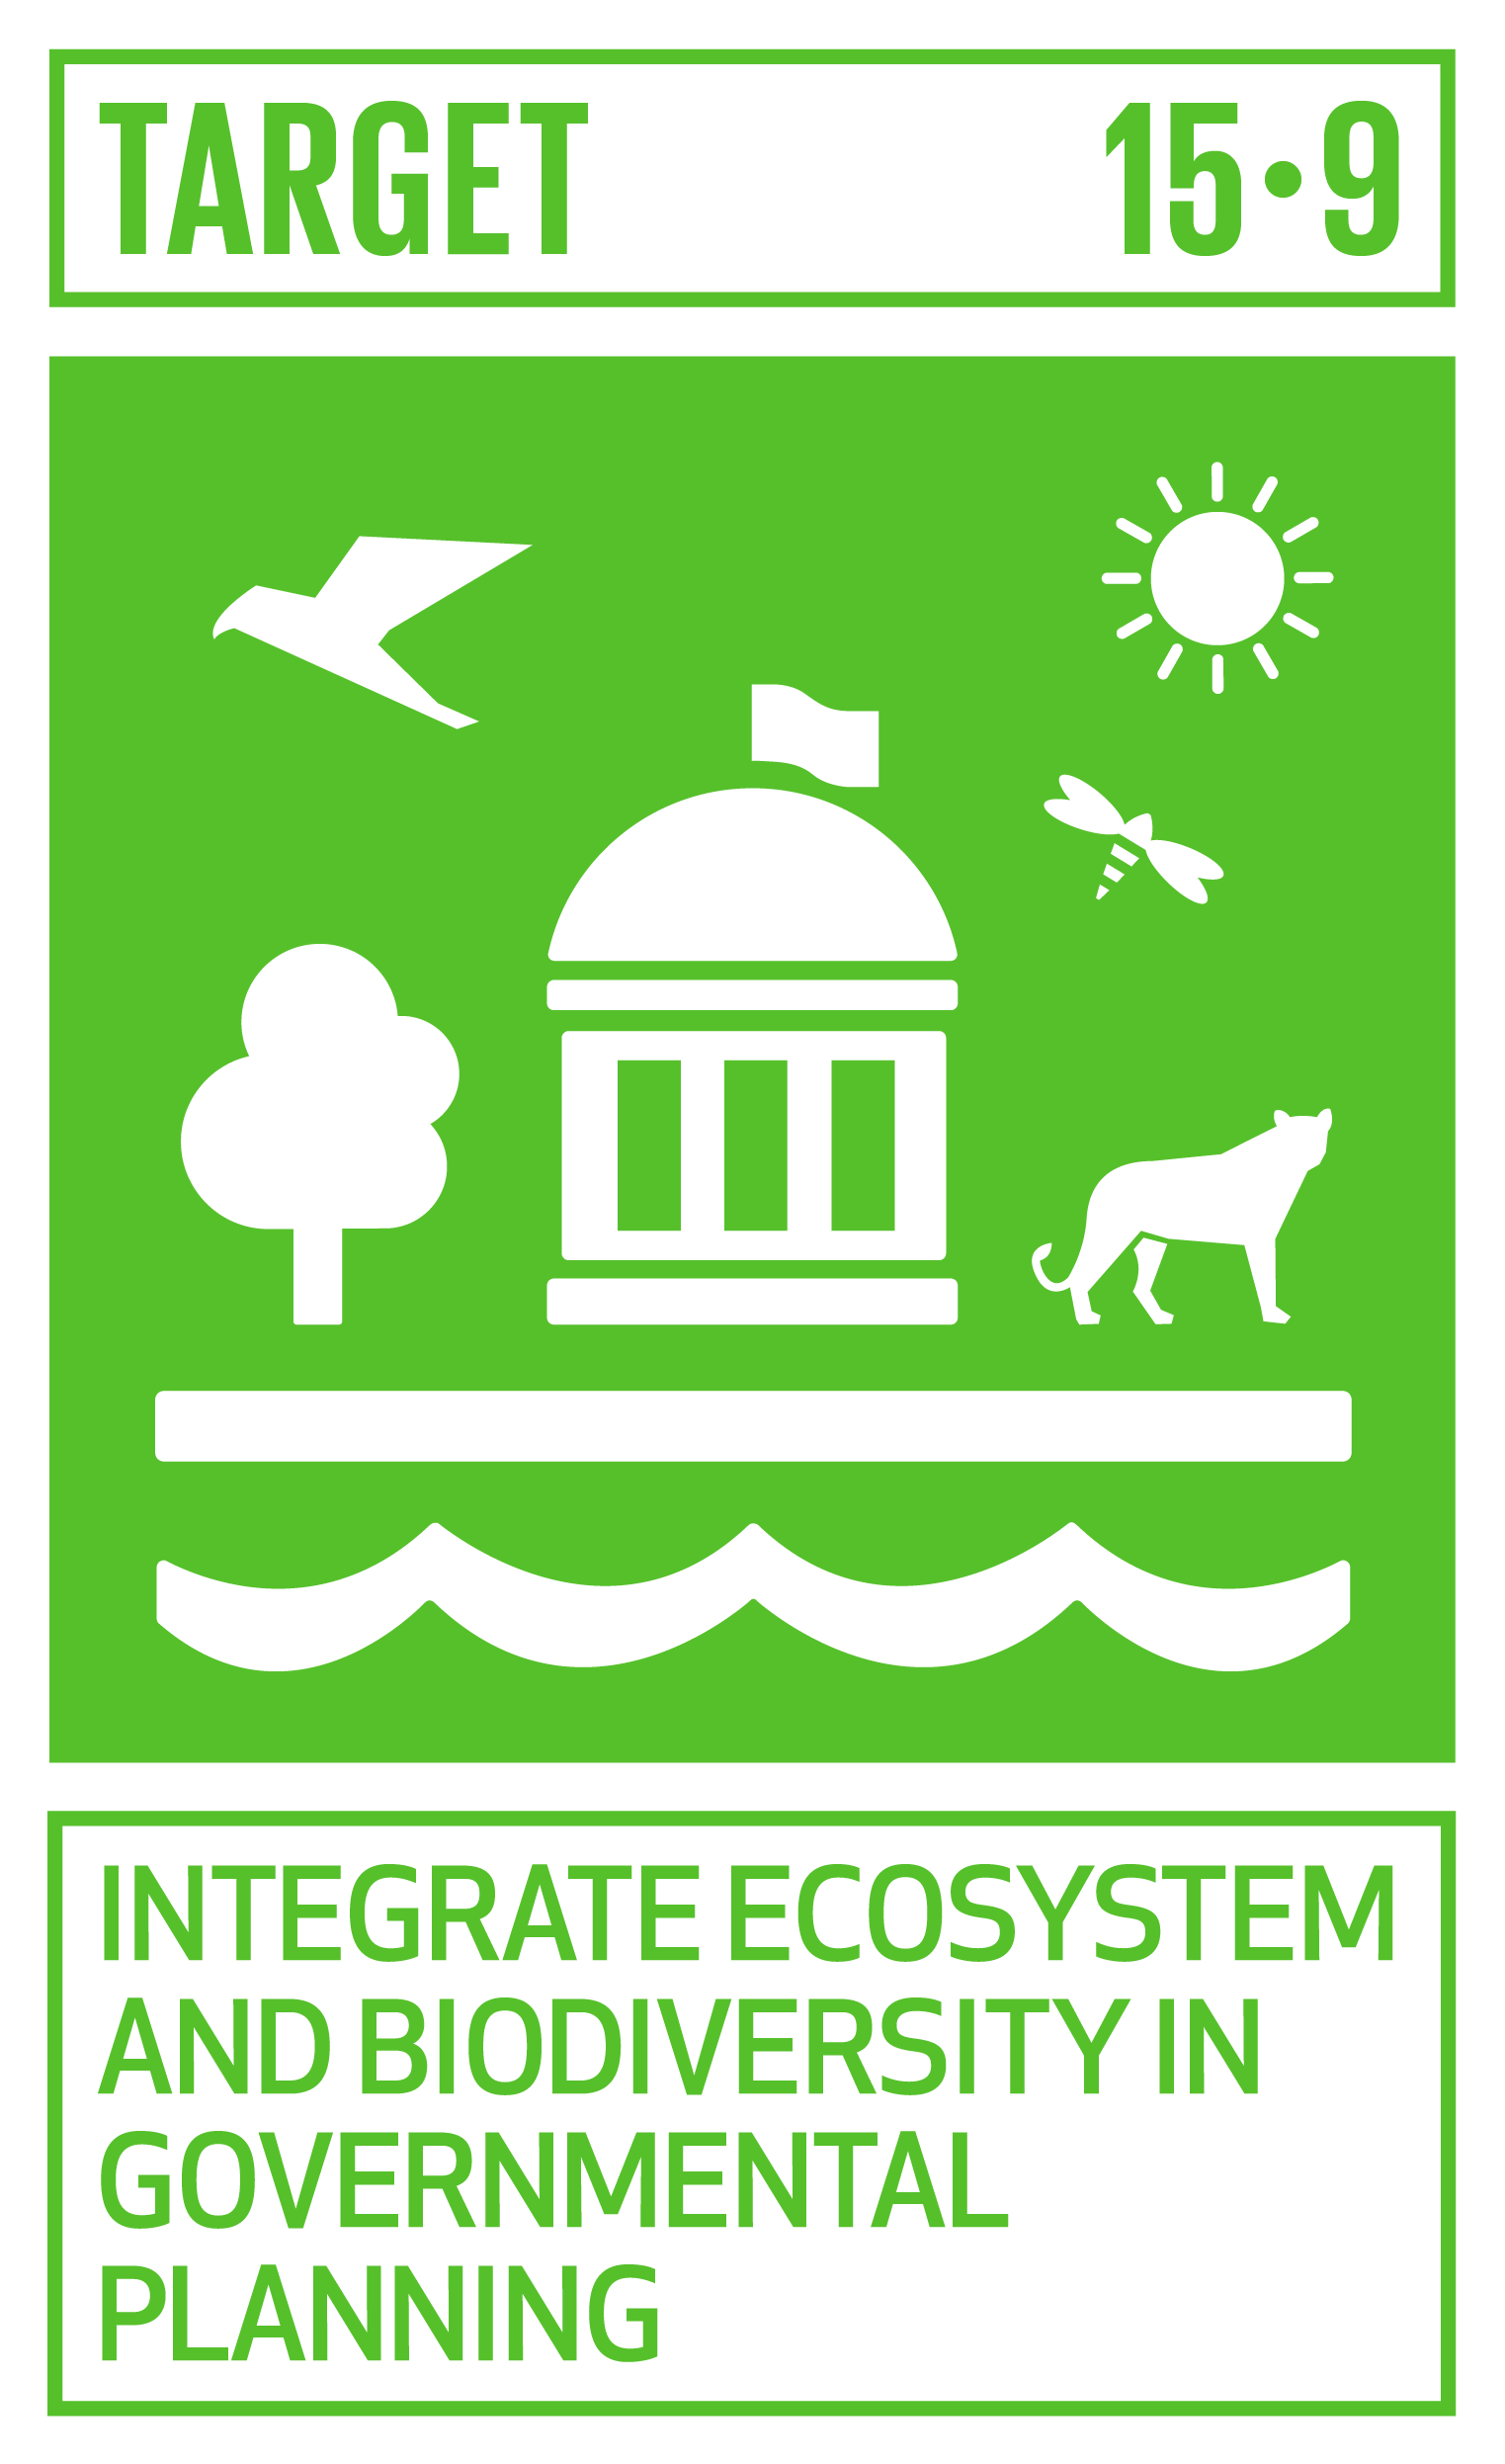 By 2020, integrate ecosystem and biodiversity values into national and local planning, development processes, poverty reduction strategies and accounts.   INDICATOR    15.9.1  Progress towards national targets established in accordance with Aichi Biodiversity Target 2 of the Strategic Plan for Biodiversity 2011–2020